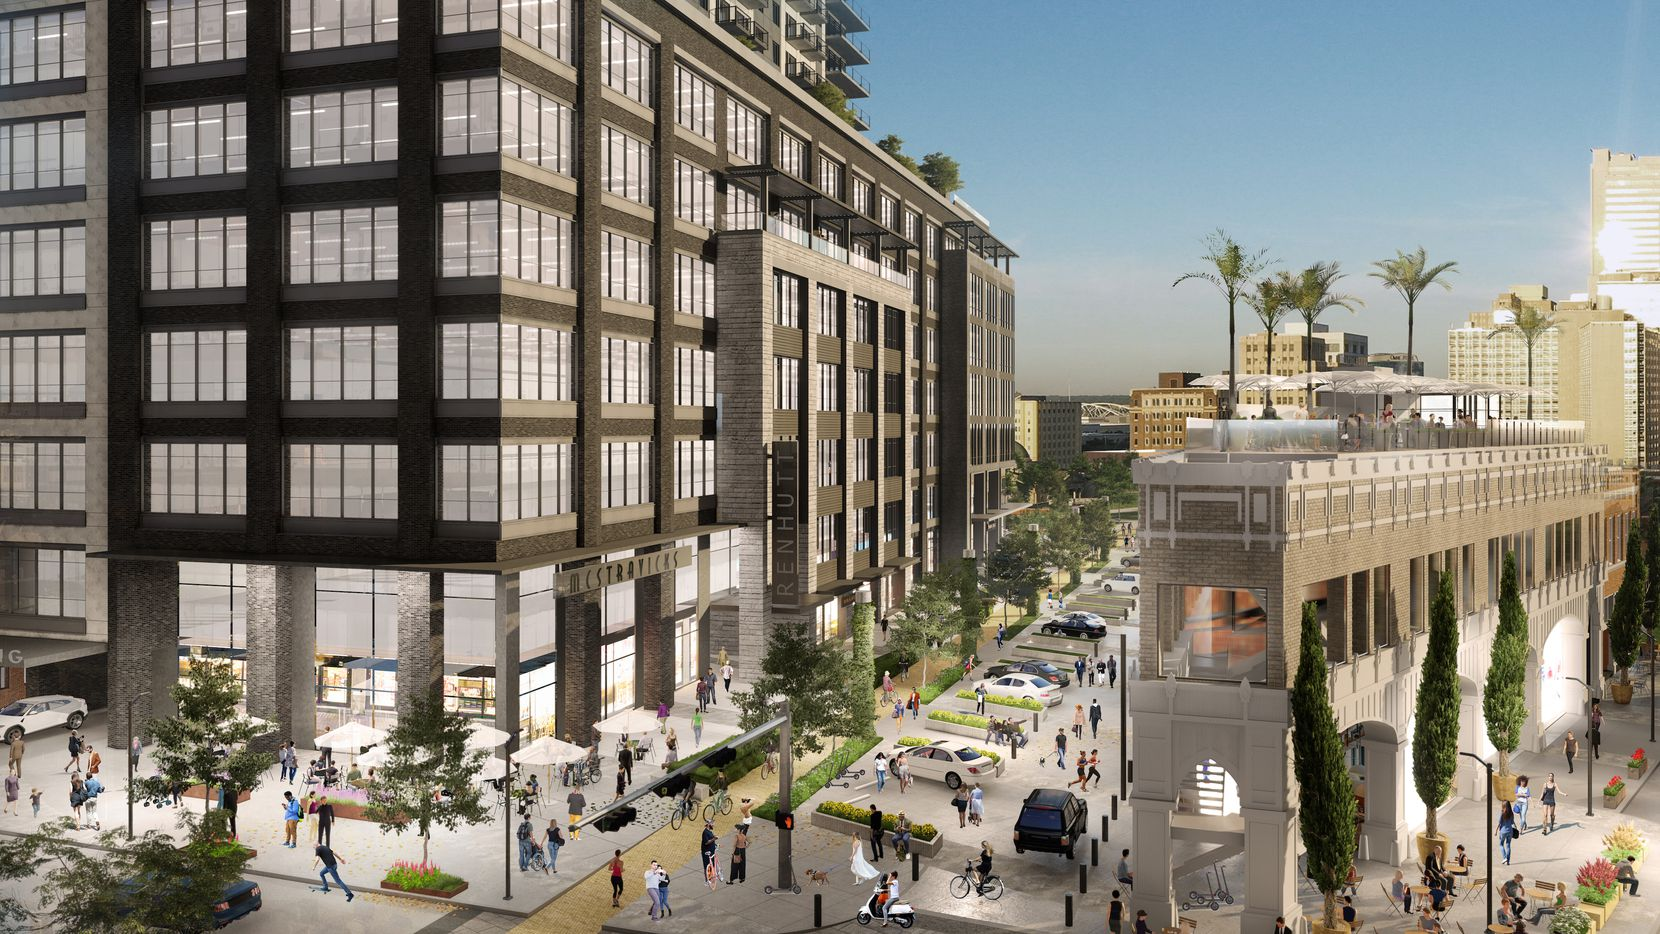 The retail, office and residential tower will be across the street from the landmark Magnolia Oil building, which is being converted into restaurant space with a rooftop bar.